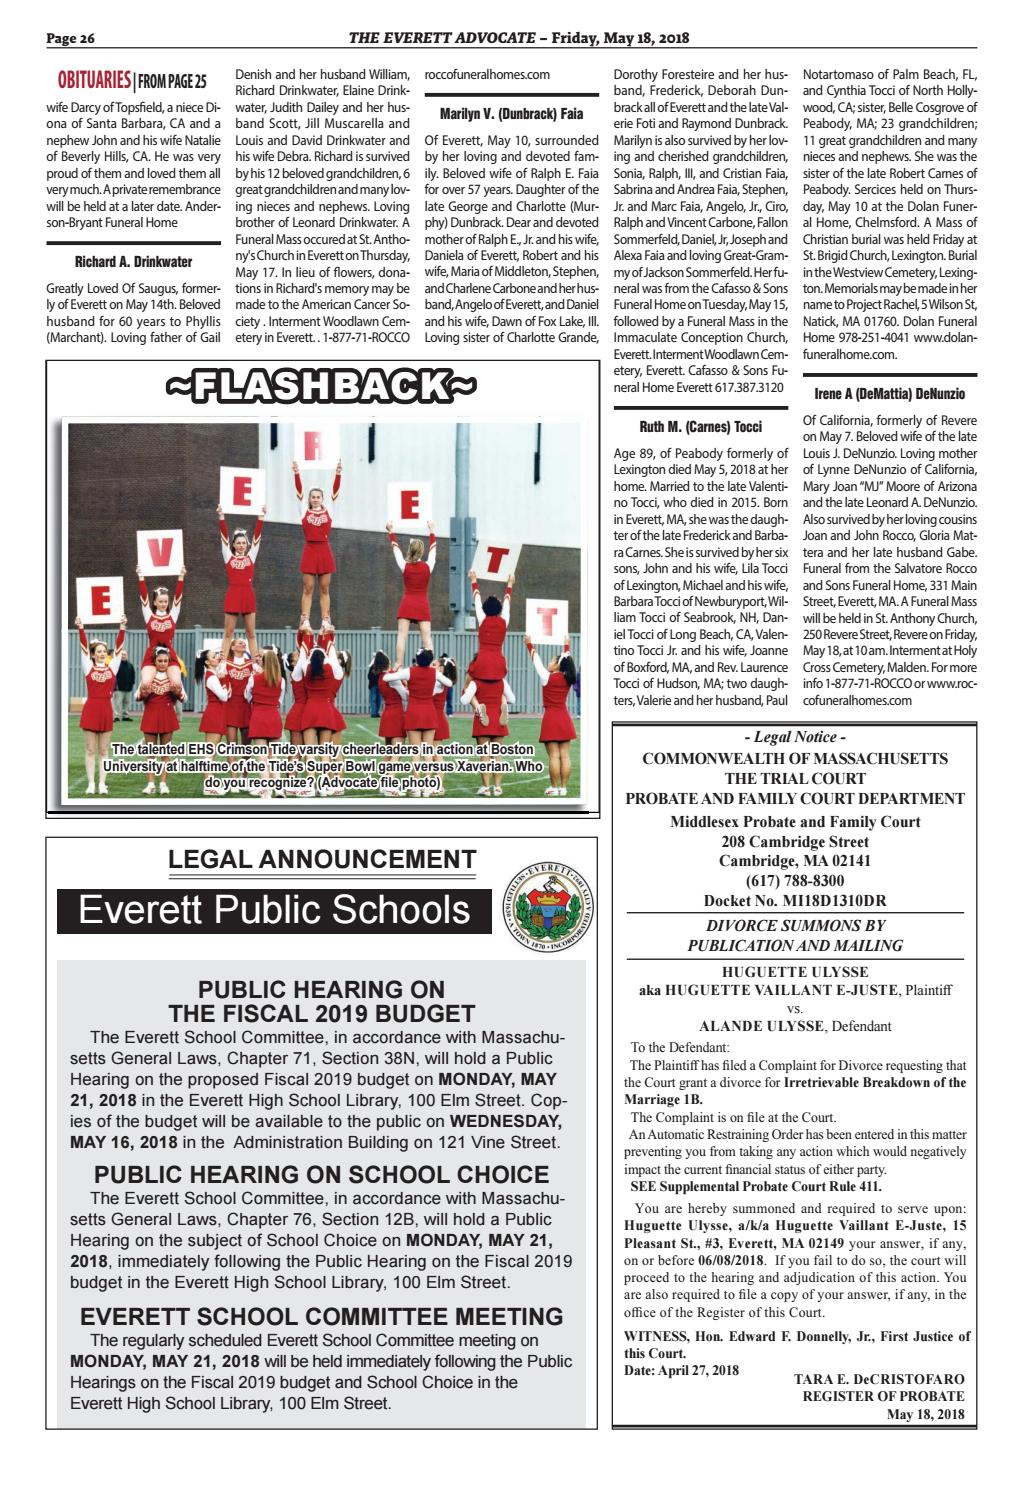 The Everett Advocate Friday May 18 2018 By Mike Kurov